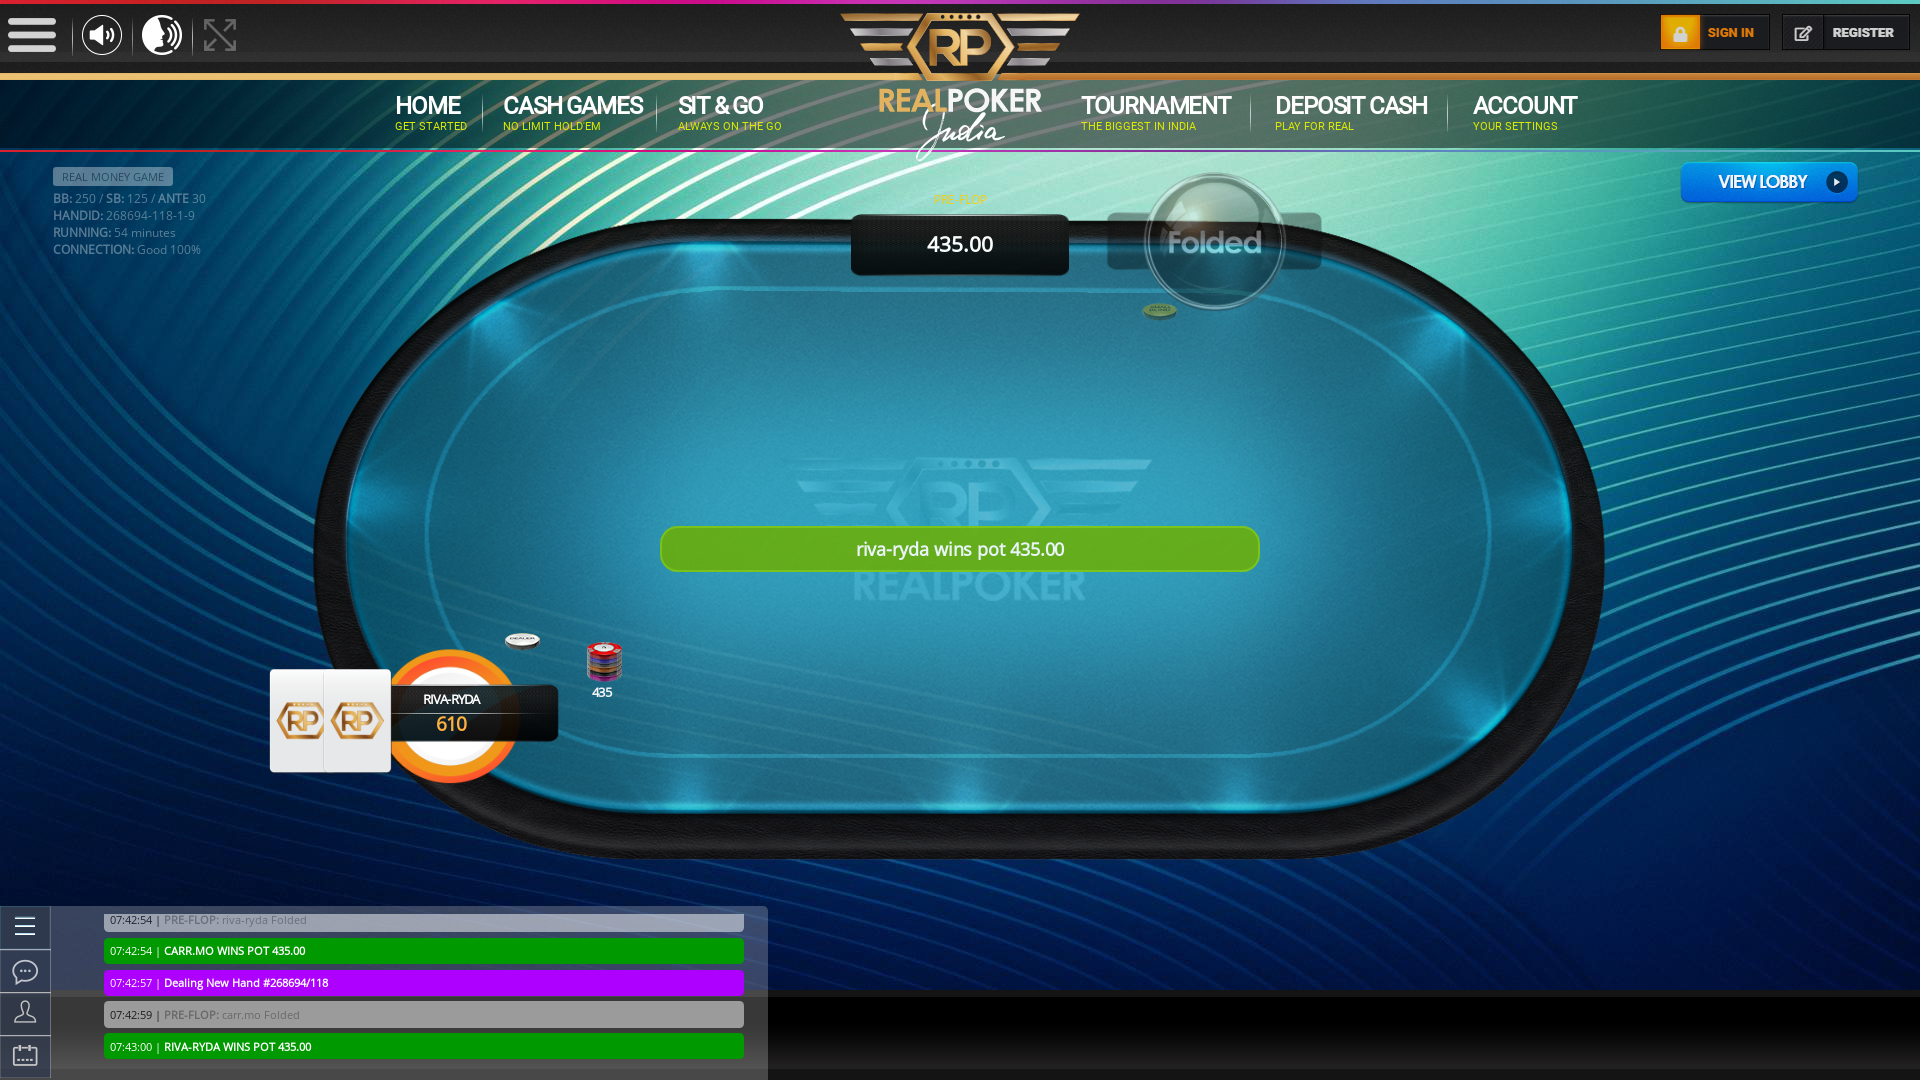 Online poker on a 10 player table in the 54th minute match up